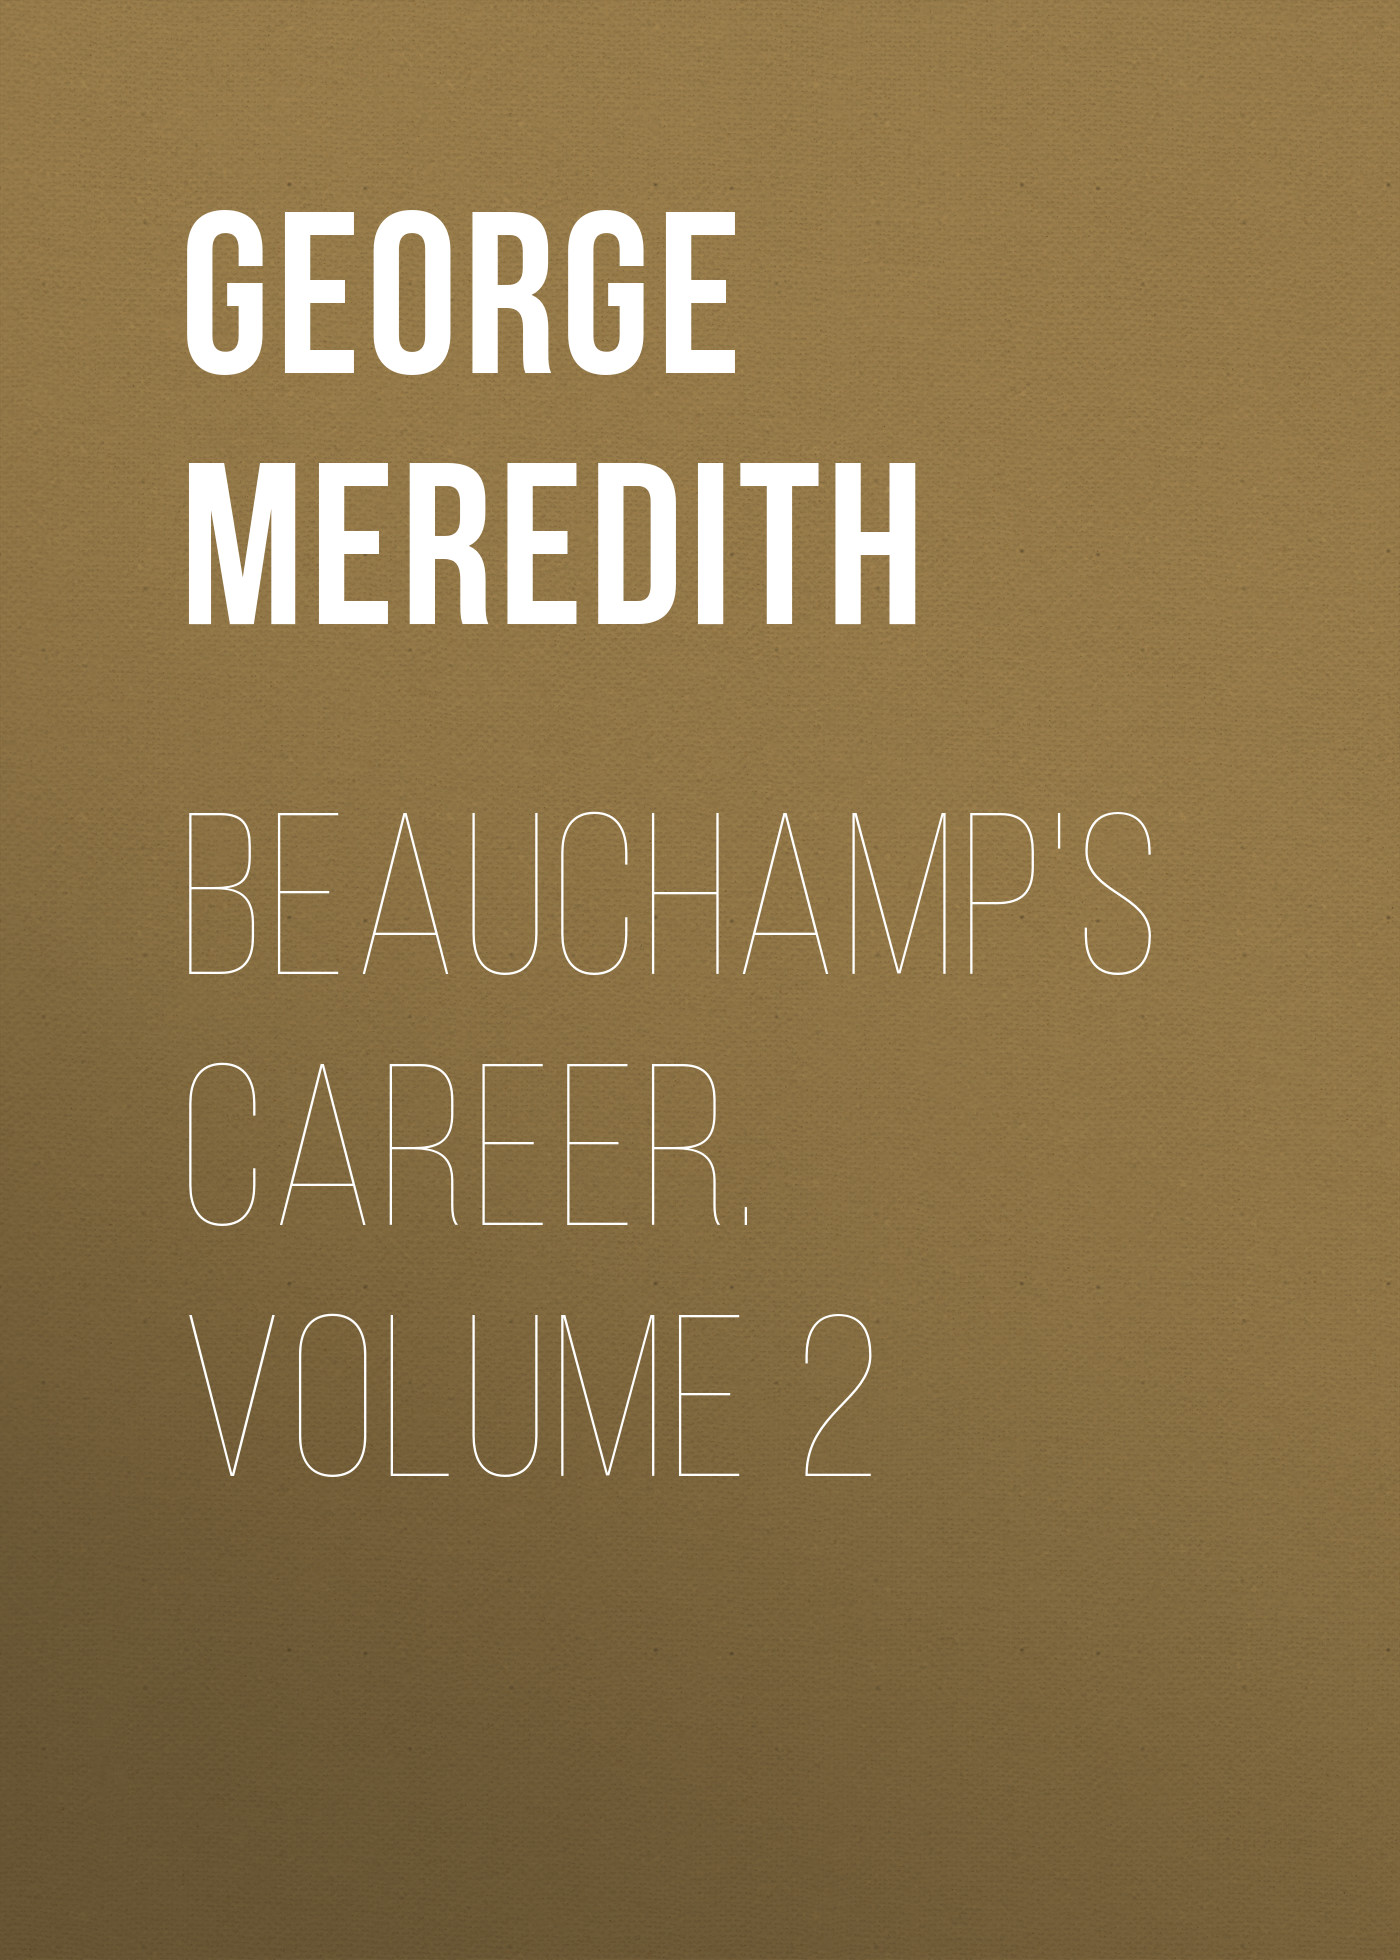 цена George Meredith Beauchamp's Career. Volume 2 в интернет-магазинах